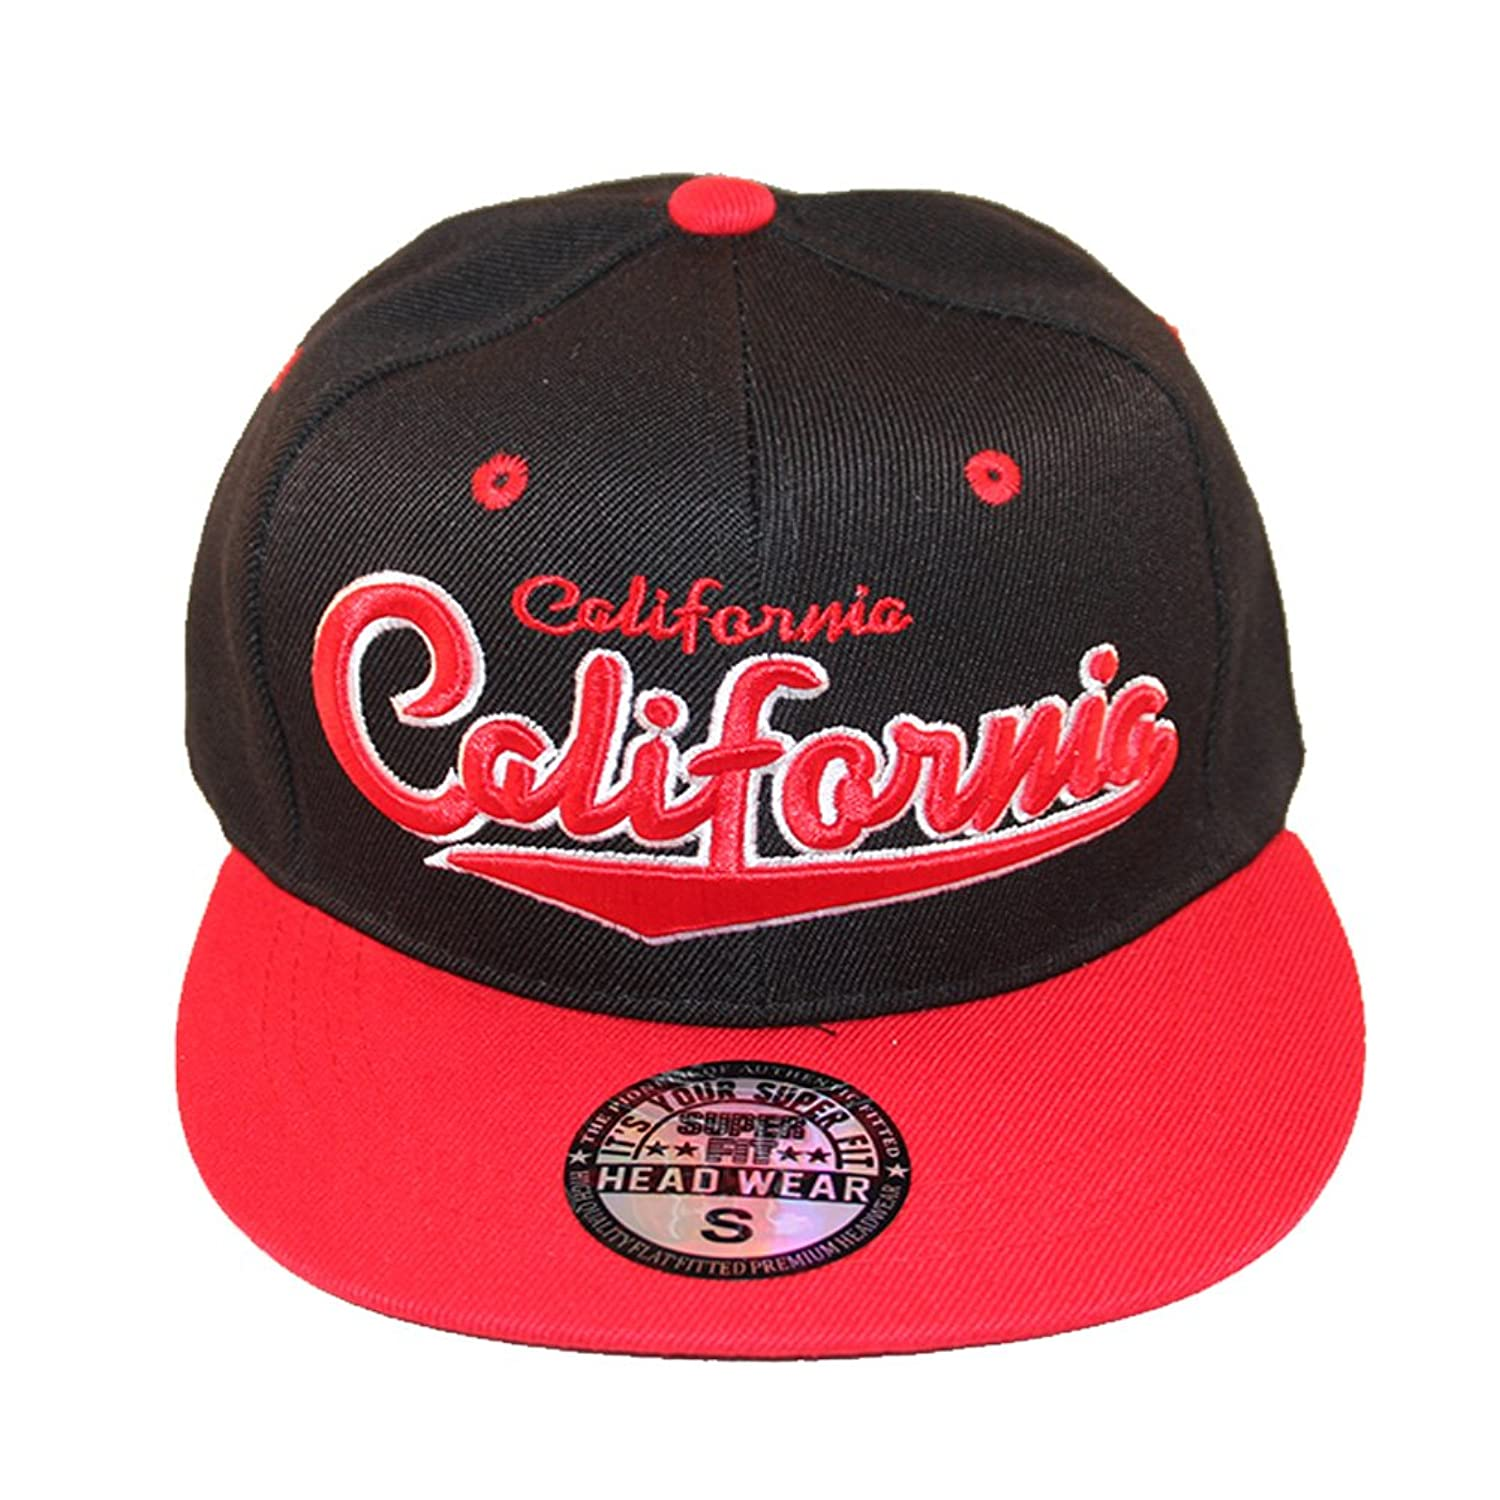 Hat Reserve California Cursive Fitted Cap мужская бейсболка fitted closed baseball hat cap hat cap iamerican football fitted closed baseball hat cap